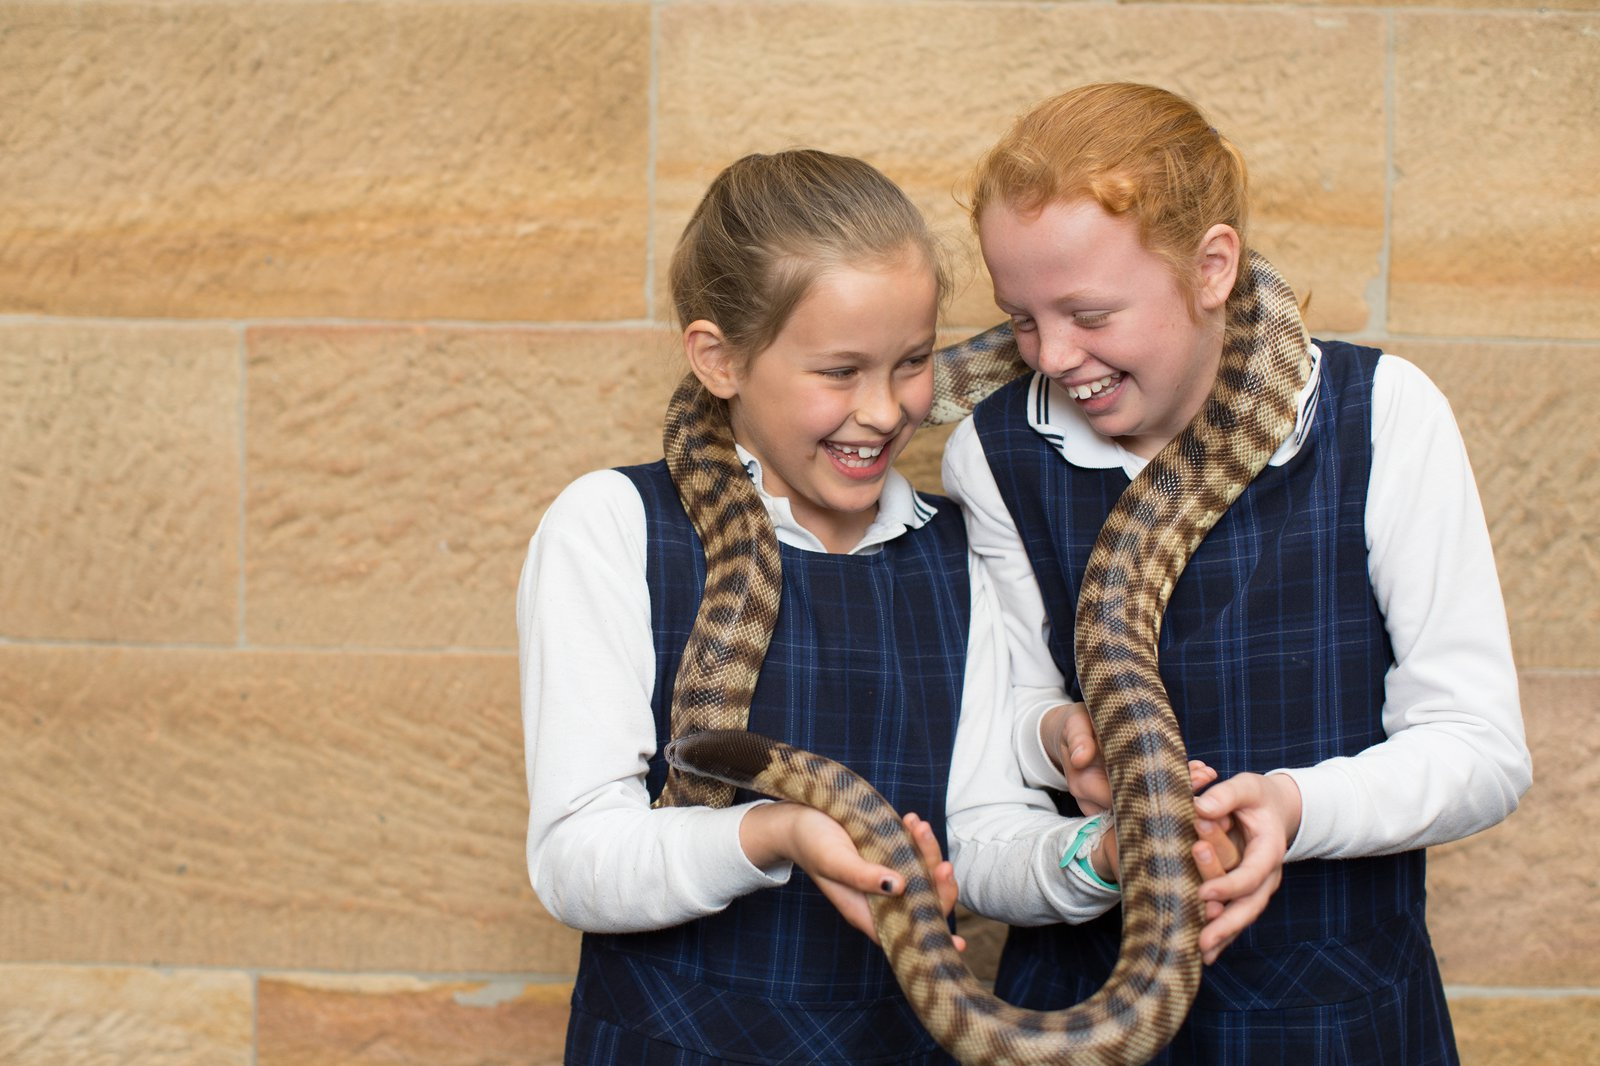 School girls with a snake